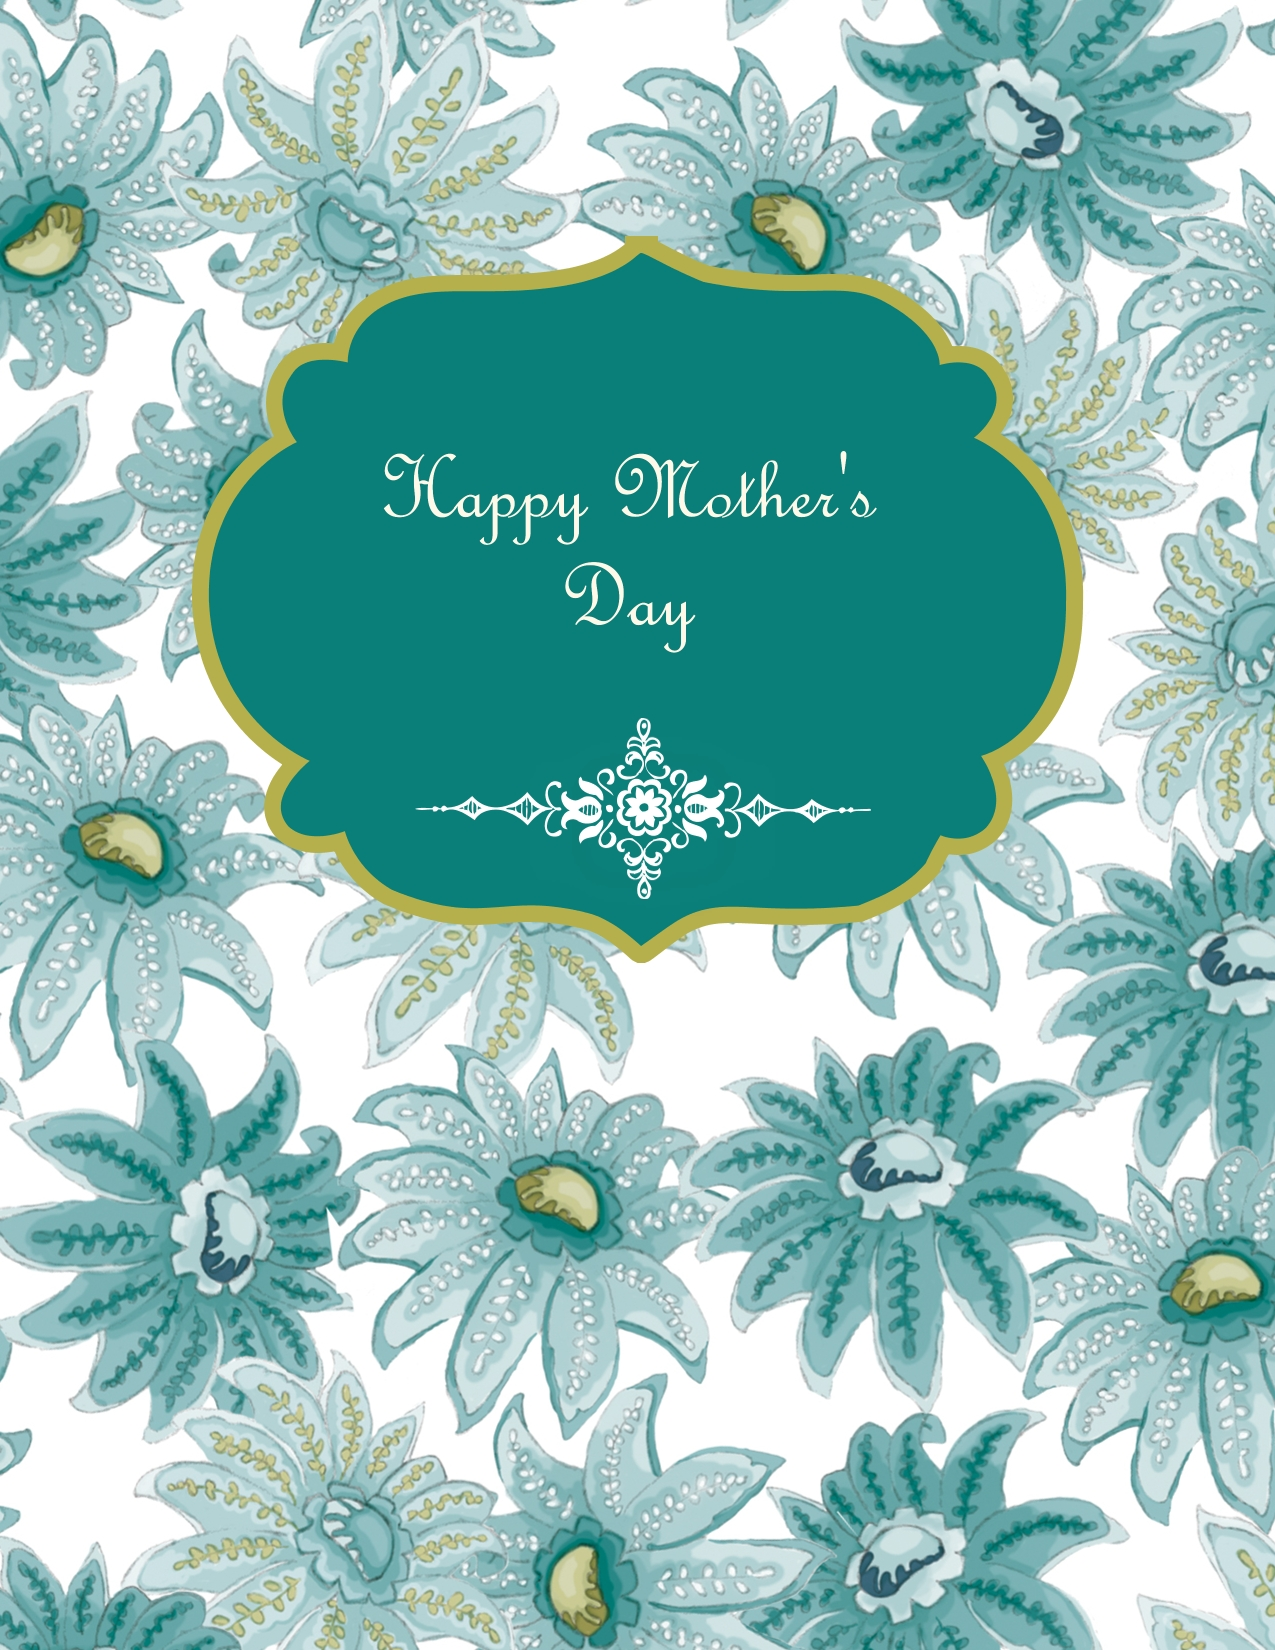 mother's_day_card-001